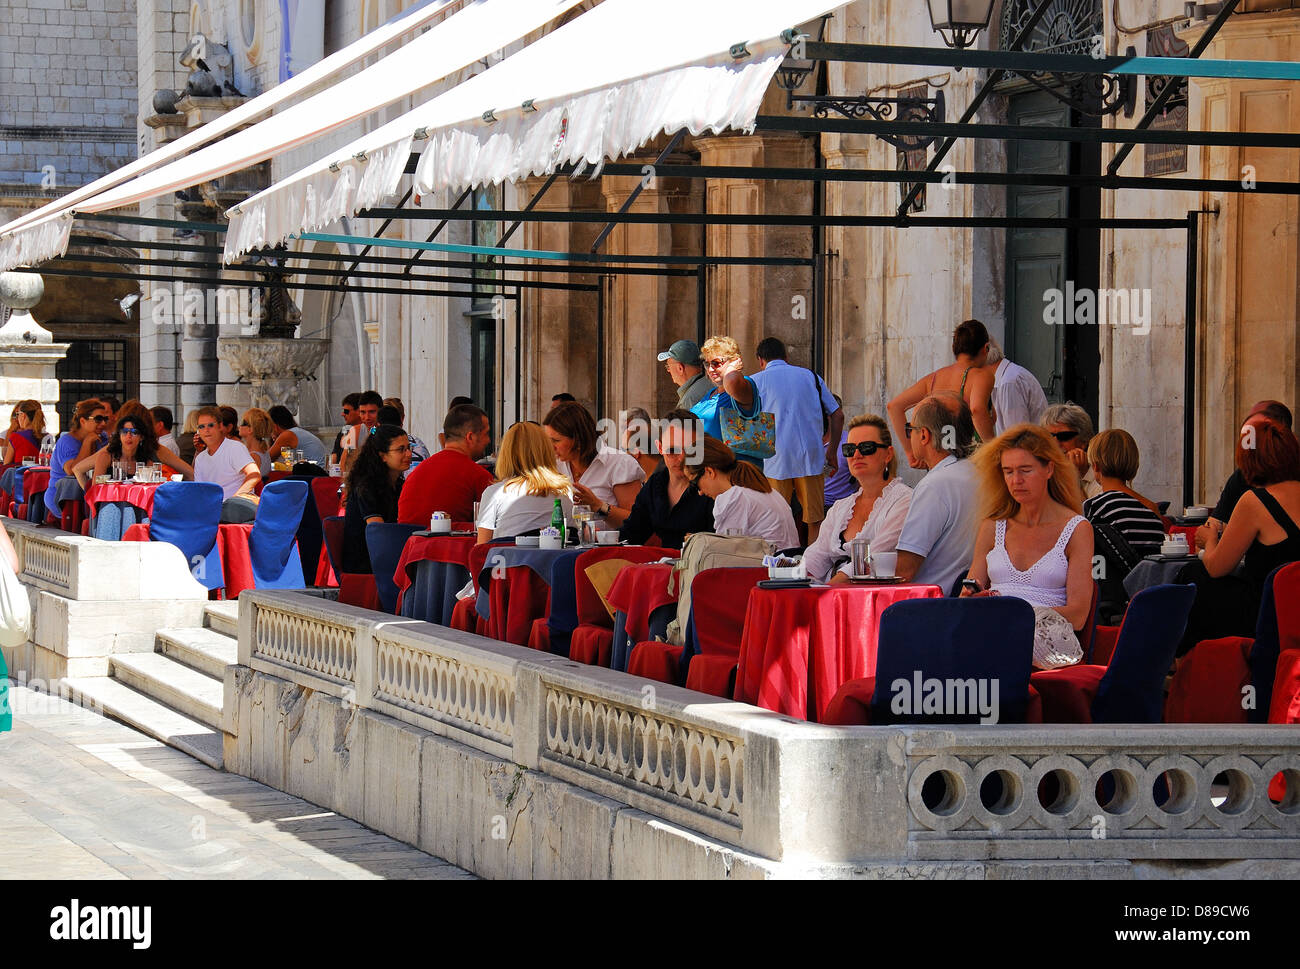 DUBROVNIK, CROATIA. A busy cafe terrace in the old walled town. Stock Photo